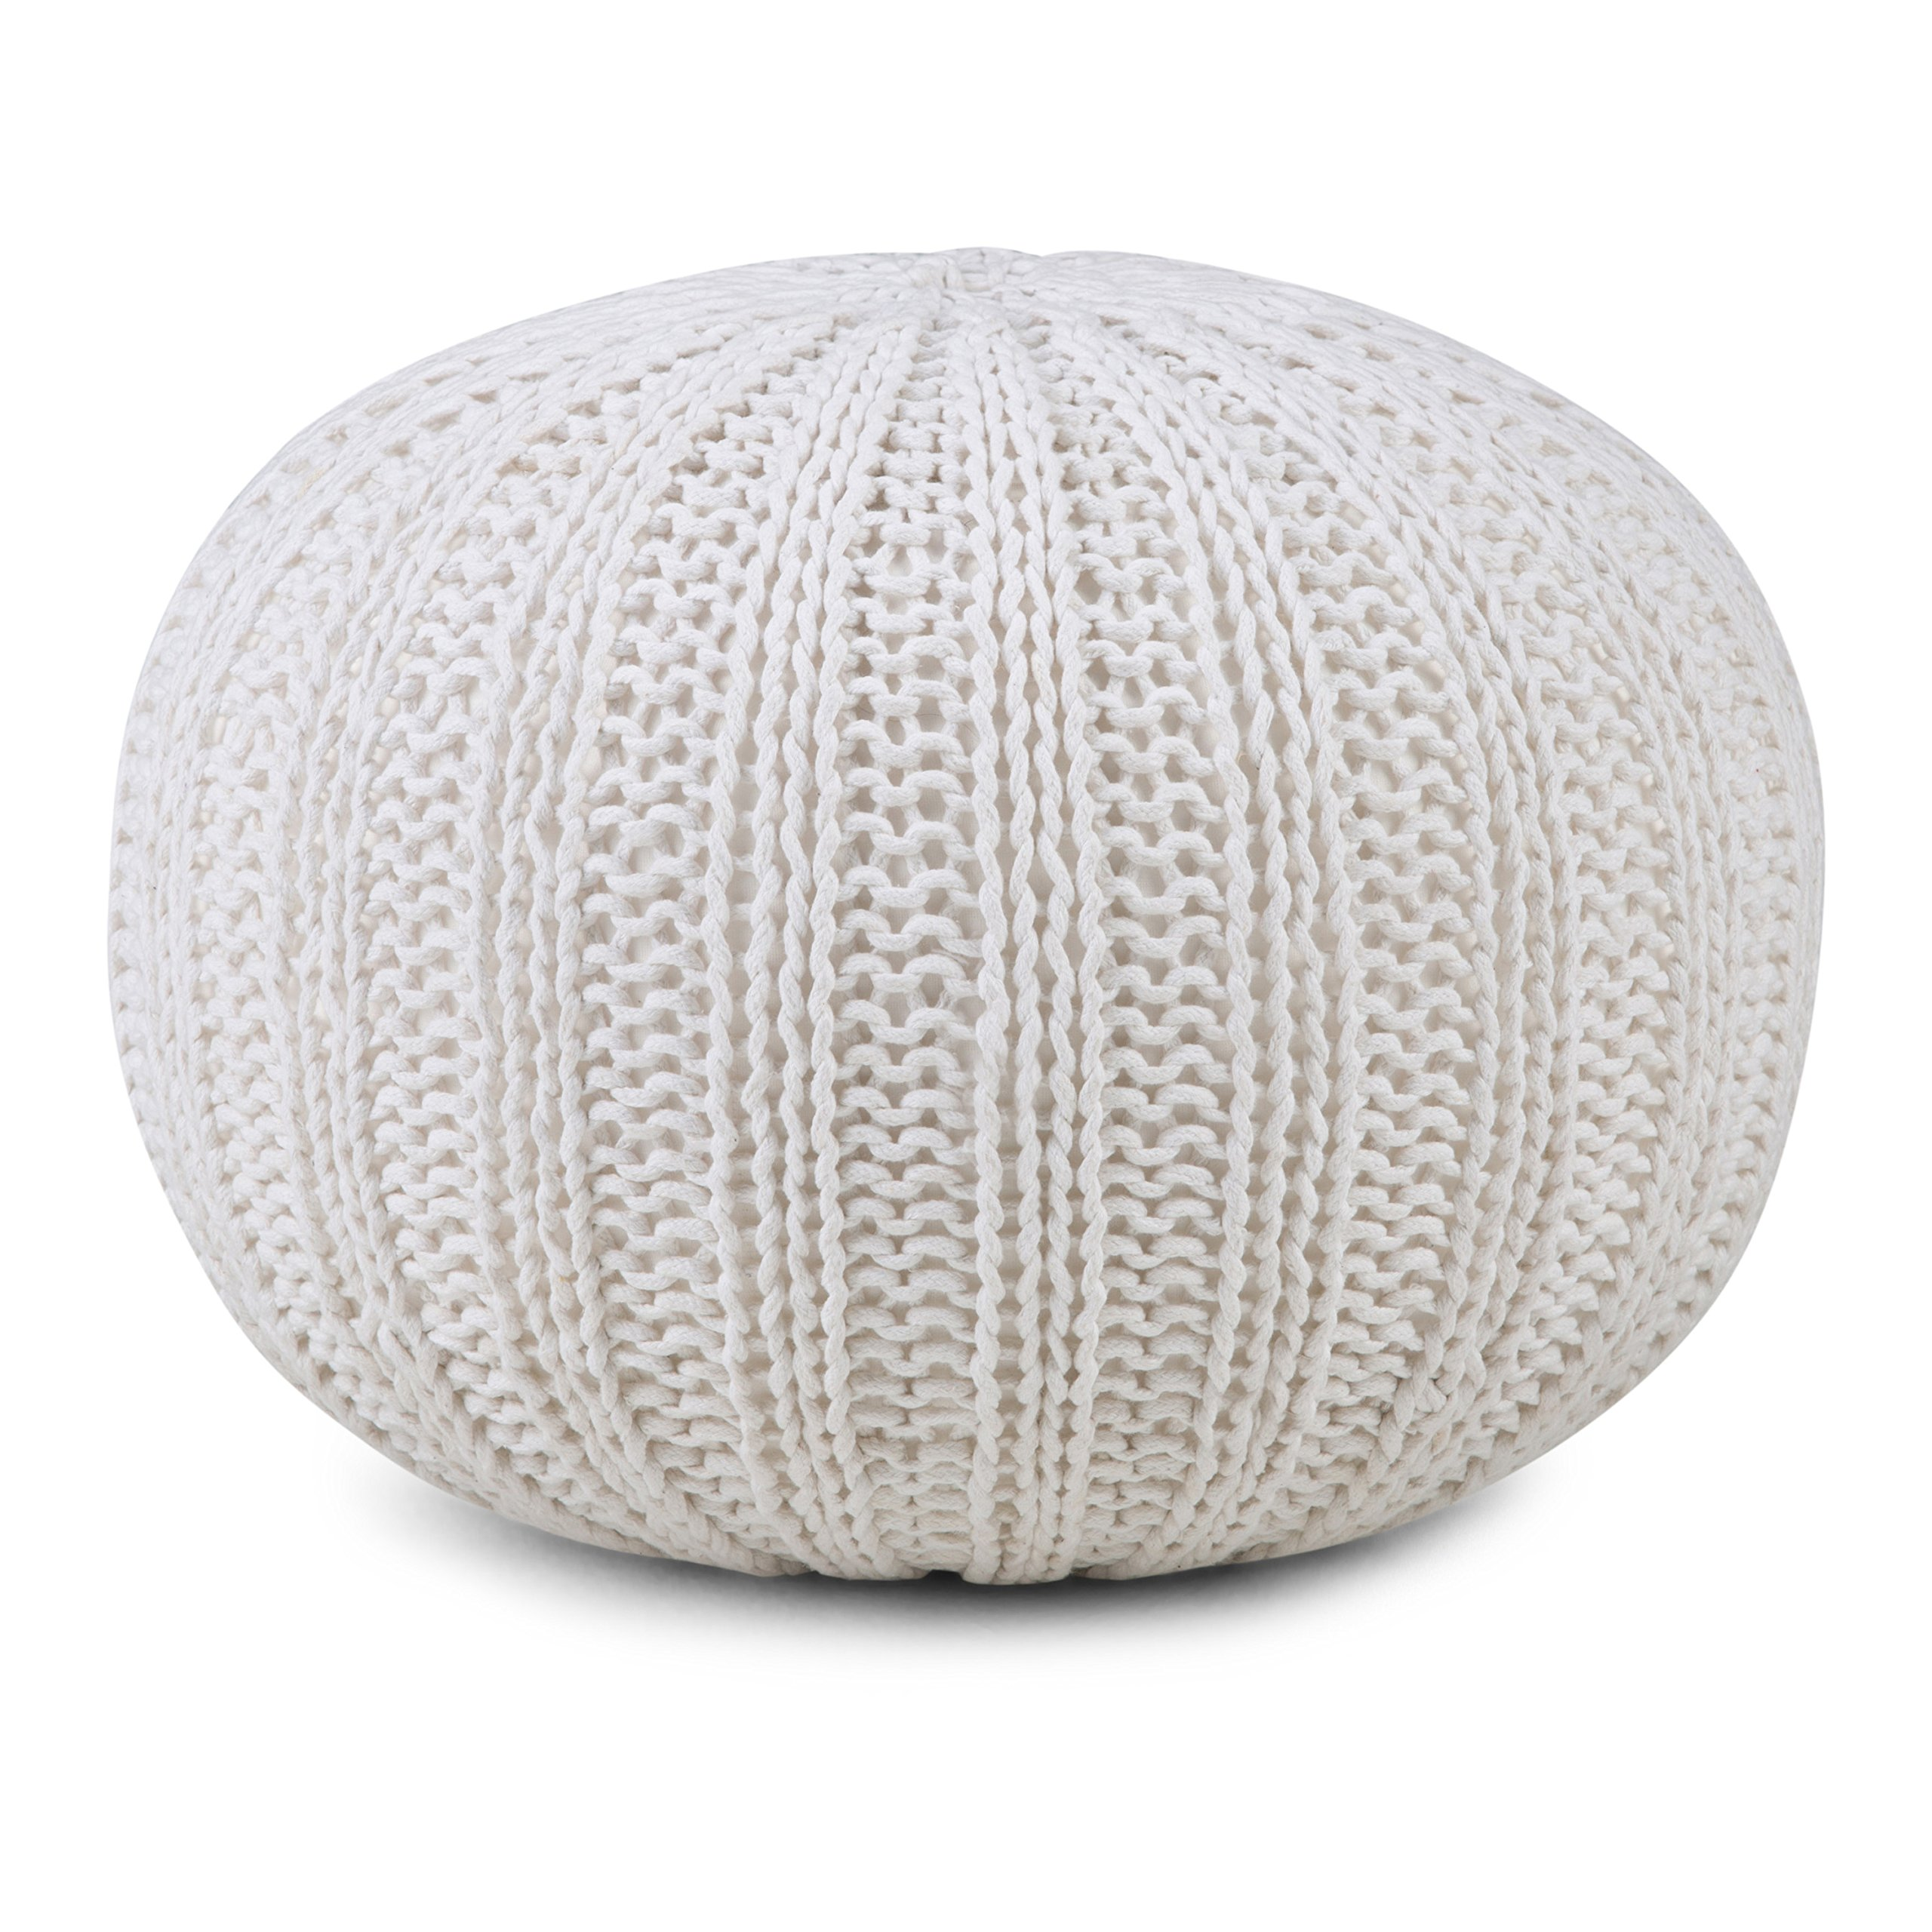 Simpli Home Shelby Round Pouf, Cream by Simpli Home